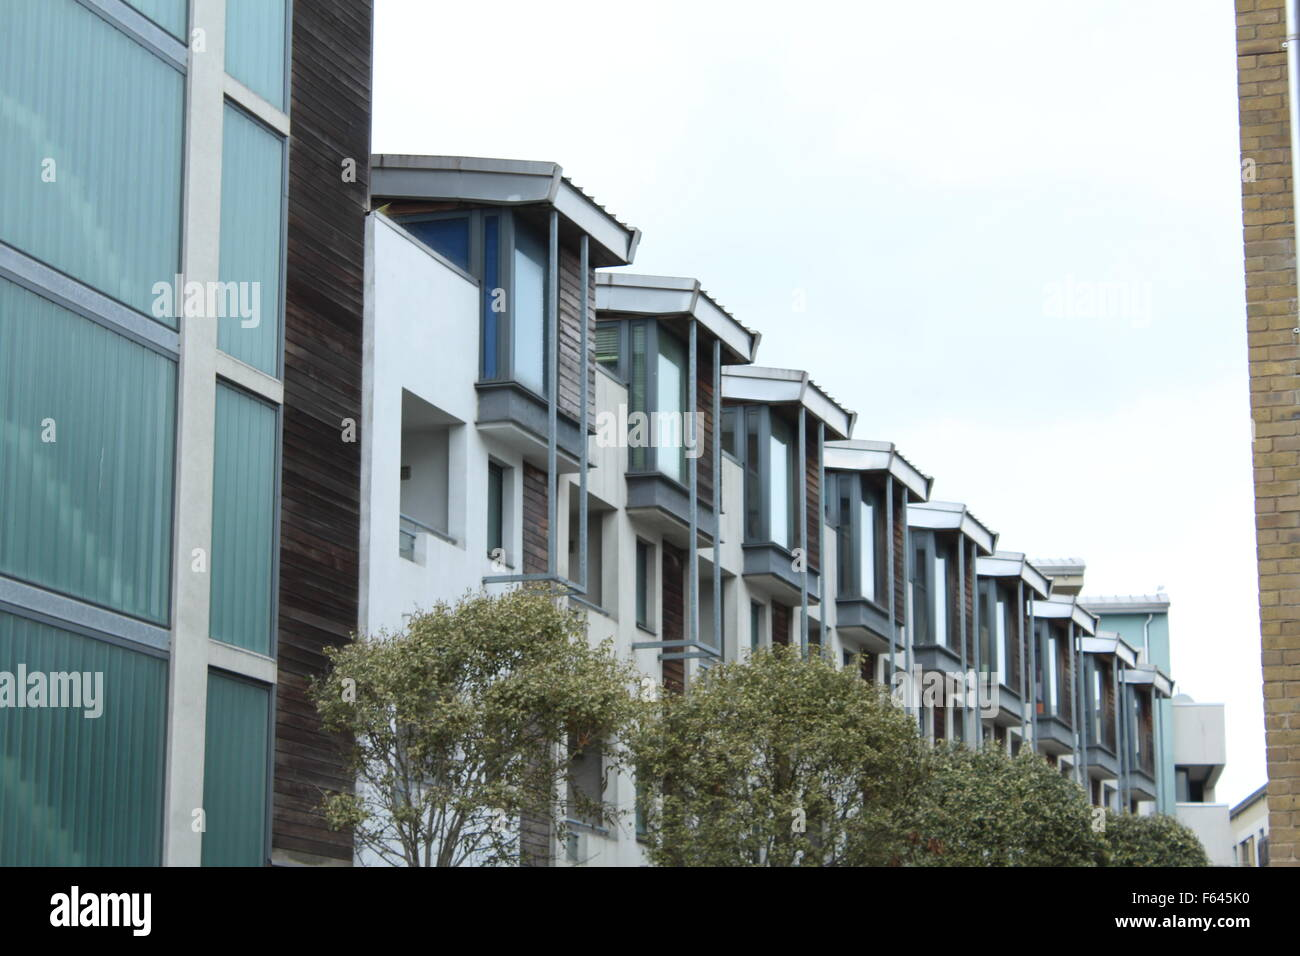 building windows repetition - Stock Image